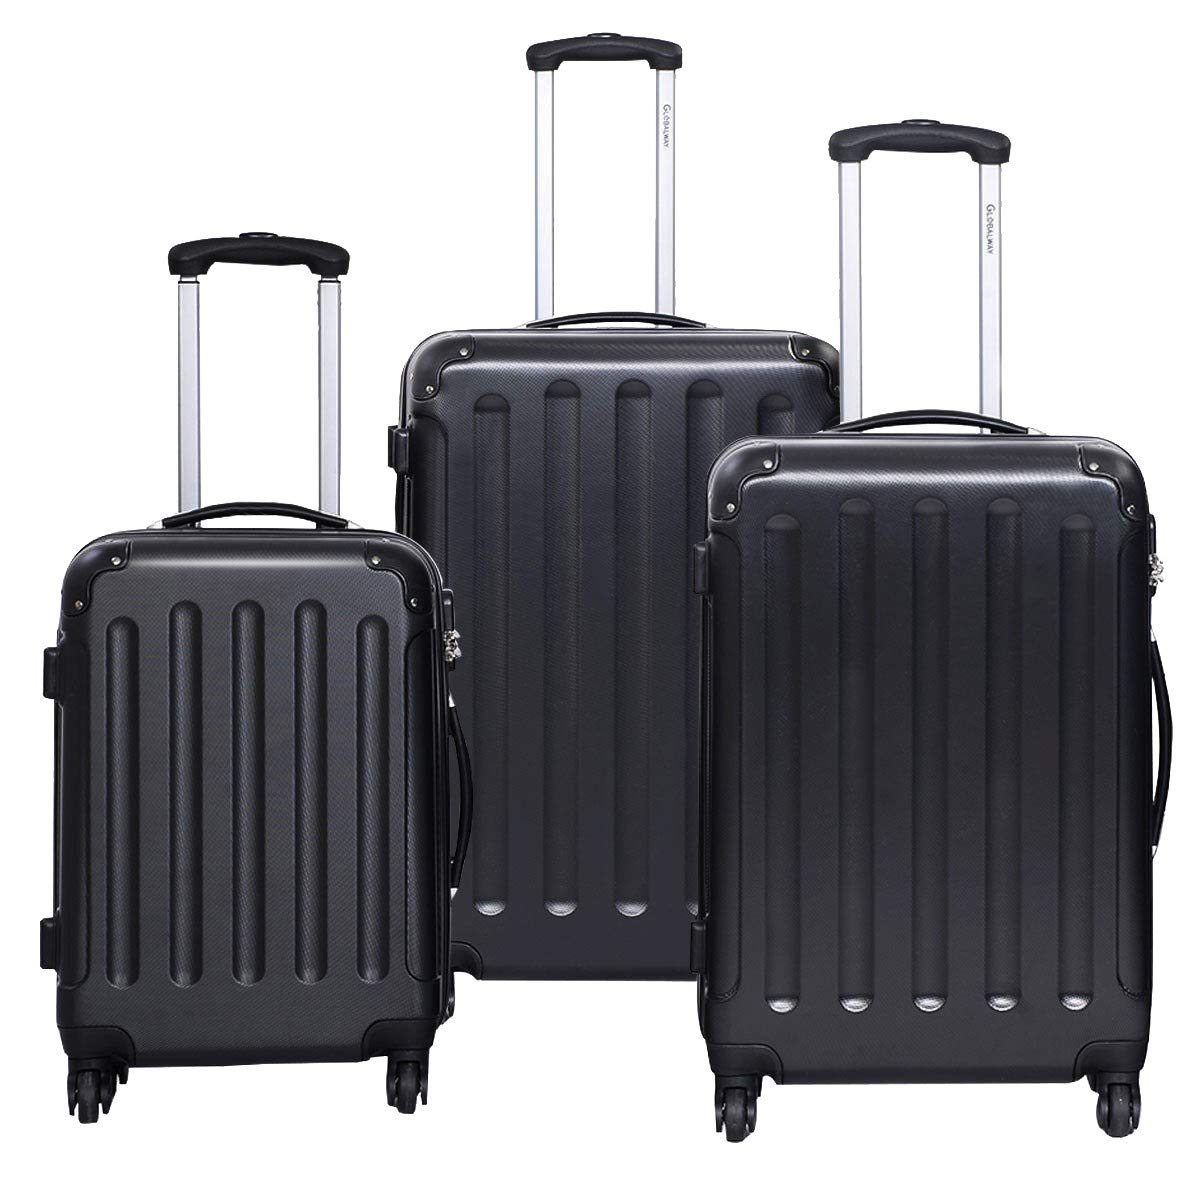 MD Group GLOBALWAY 3 pcs Luggage Trolley Case Set, Black